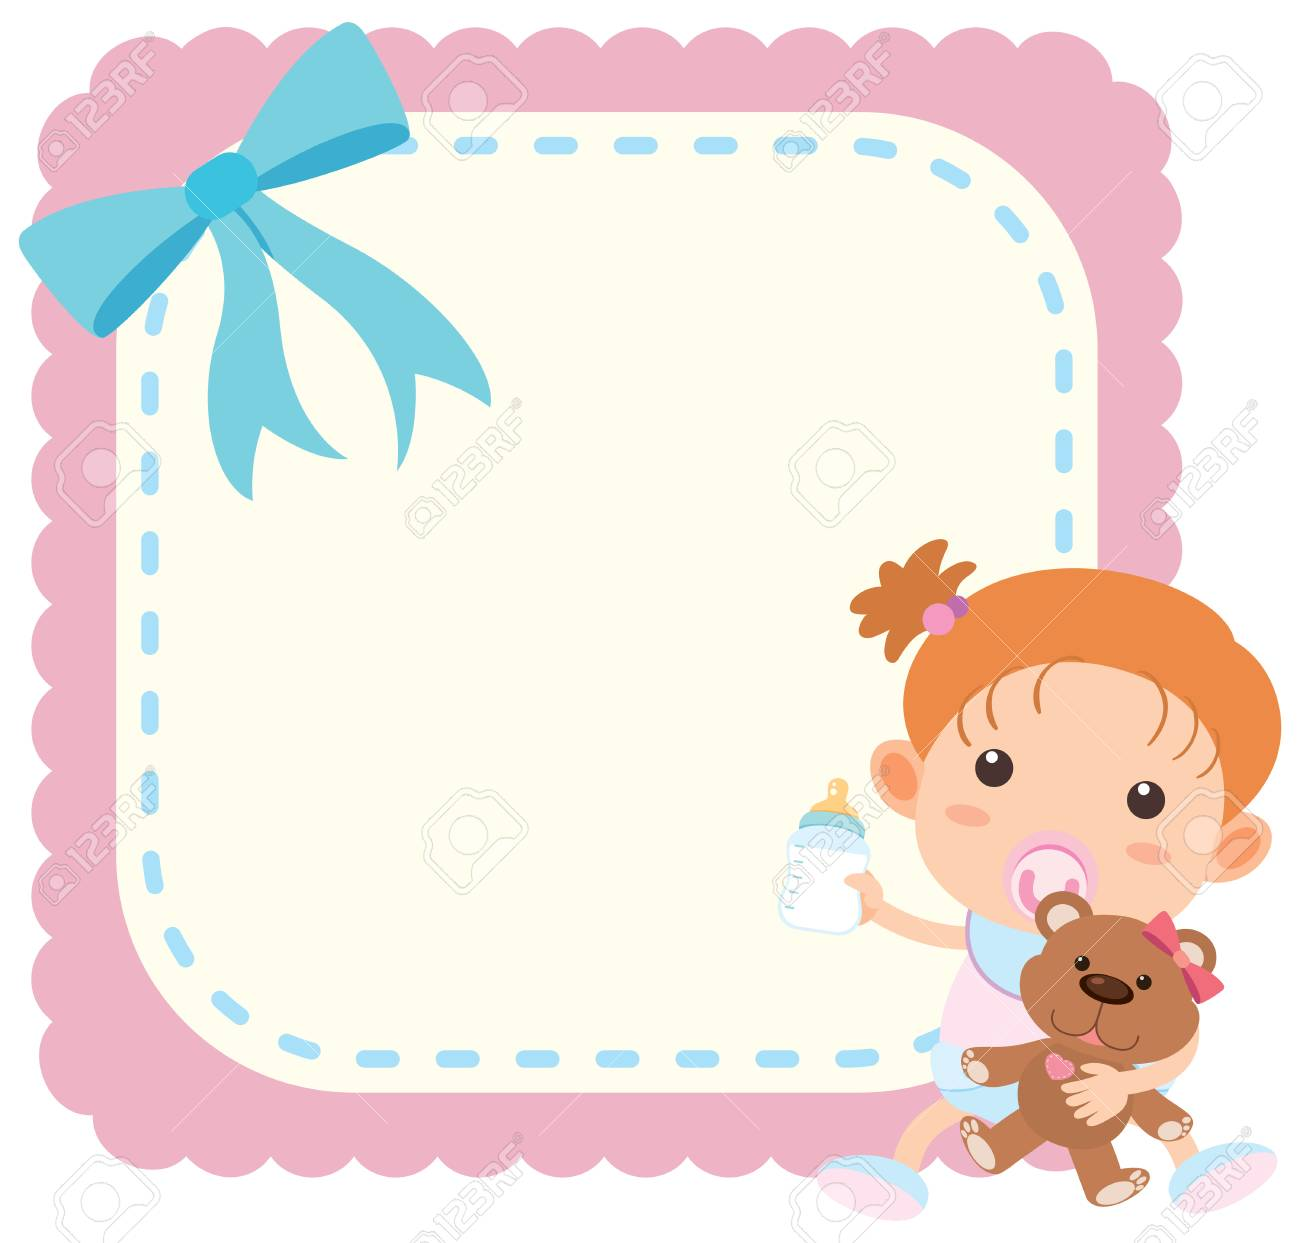 picture regarding Free Printable Baby Borders for Paper identify Border template with child woman and teddy undergo instance